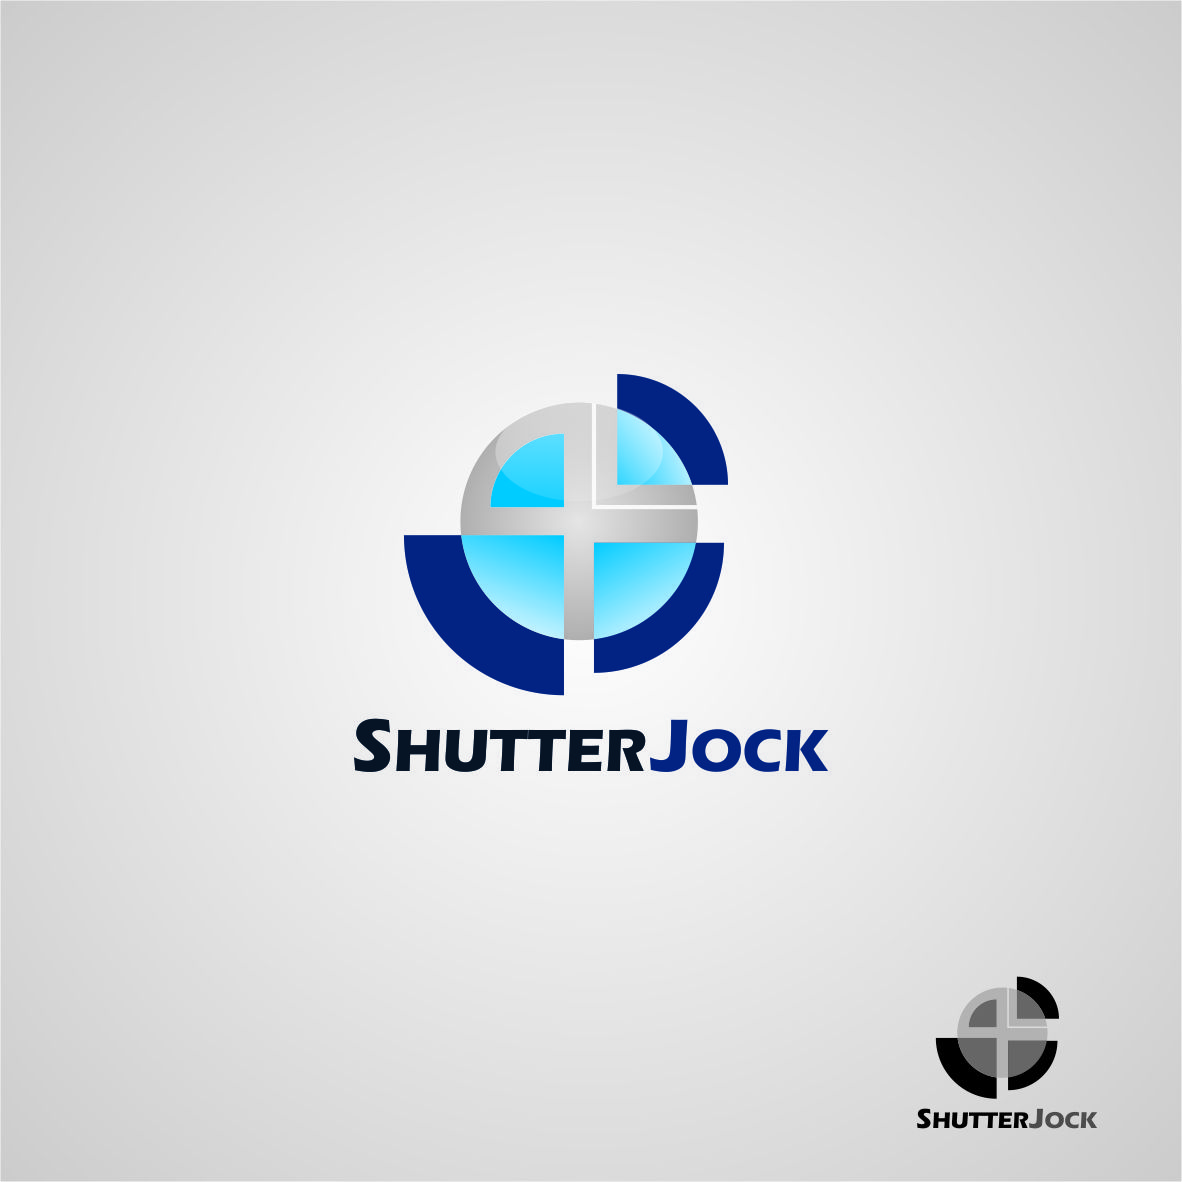 Logo Design by arteo_design - Entry No. 87 in the Logo Design Contest Unique Logo Design Wanted for Shutterjock LLC.